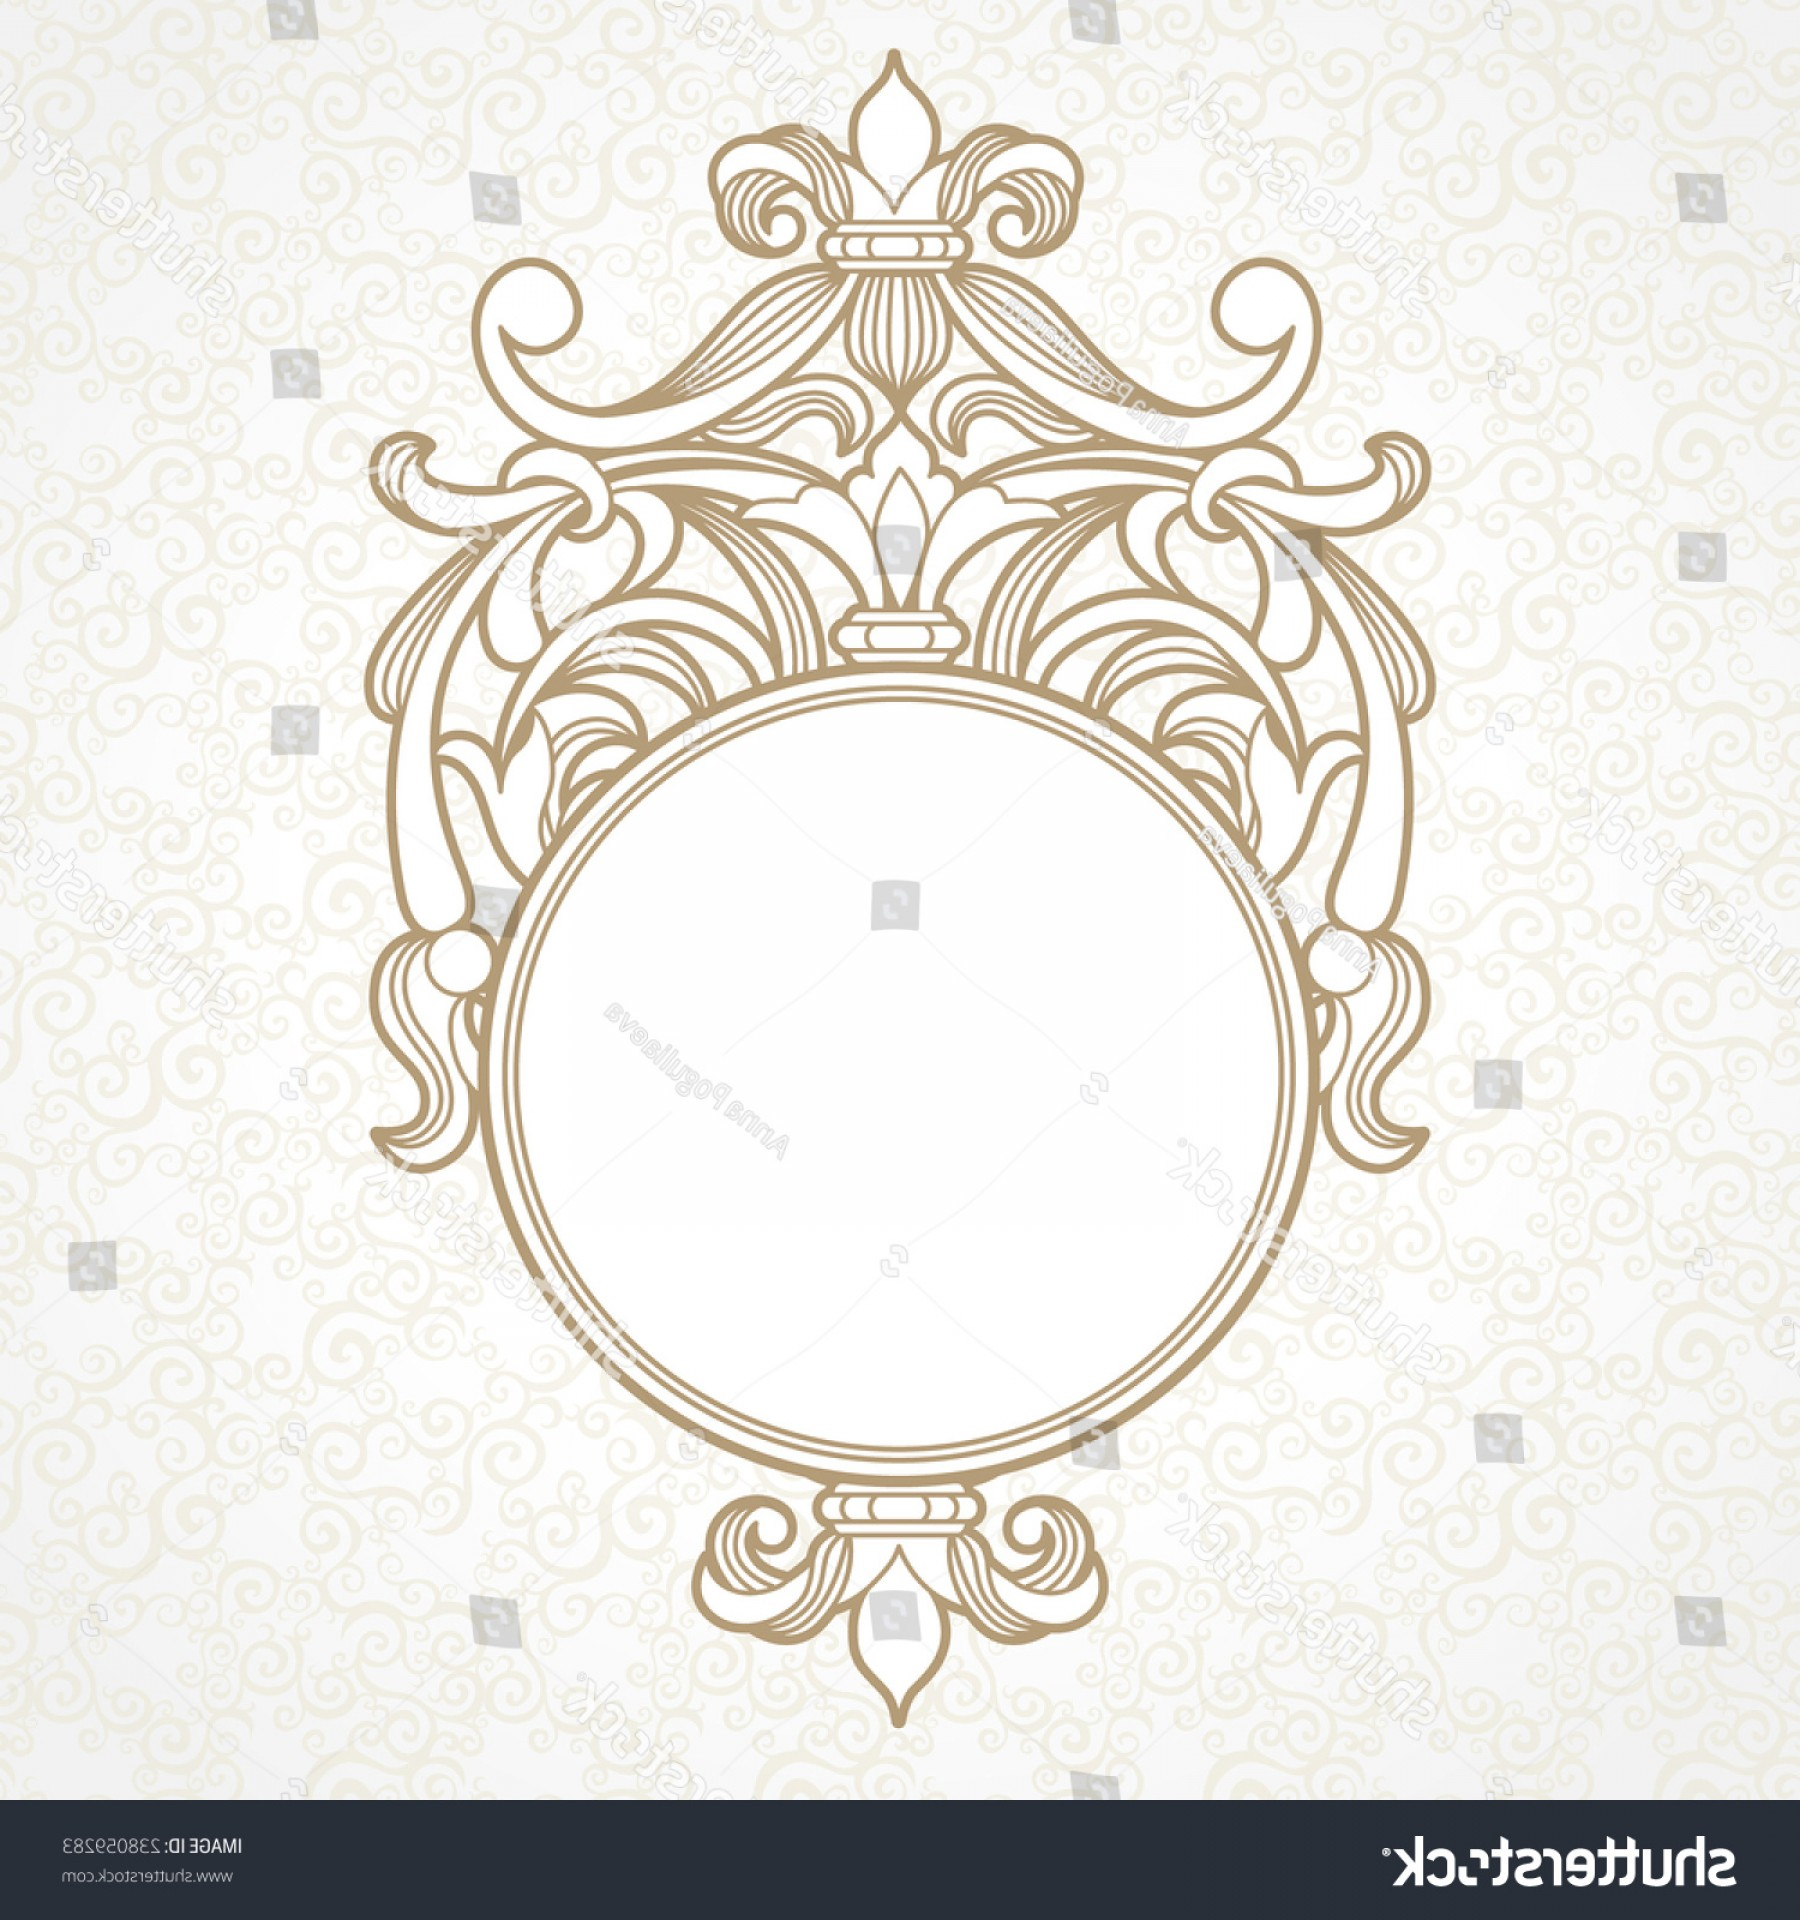 Filigree Oval Frame Vector: Filigree Vector Frame Victorian Style Ornate